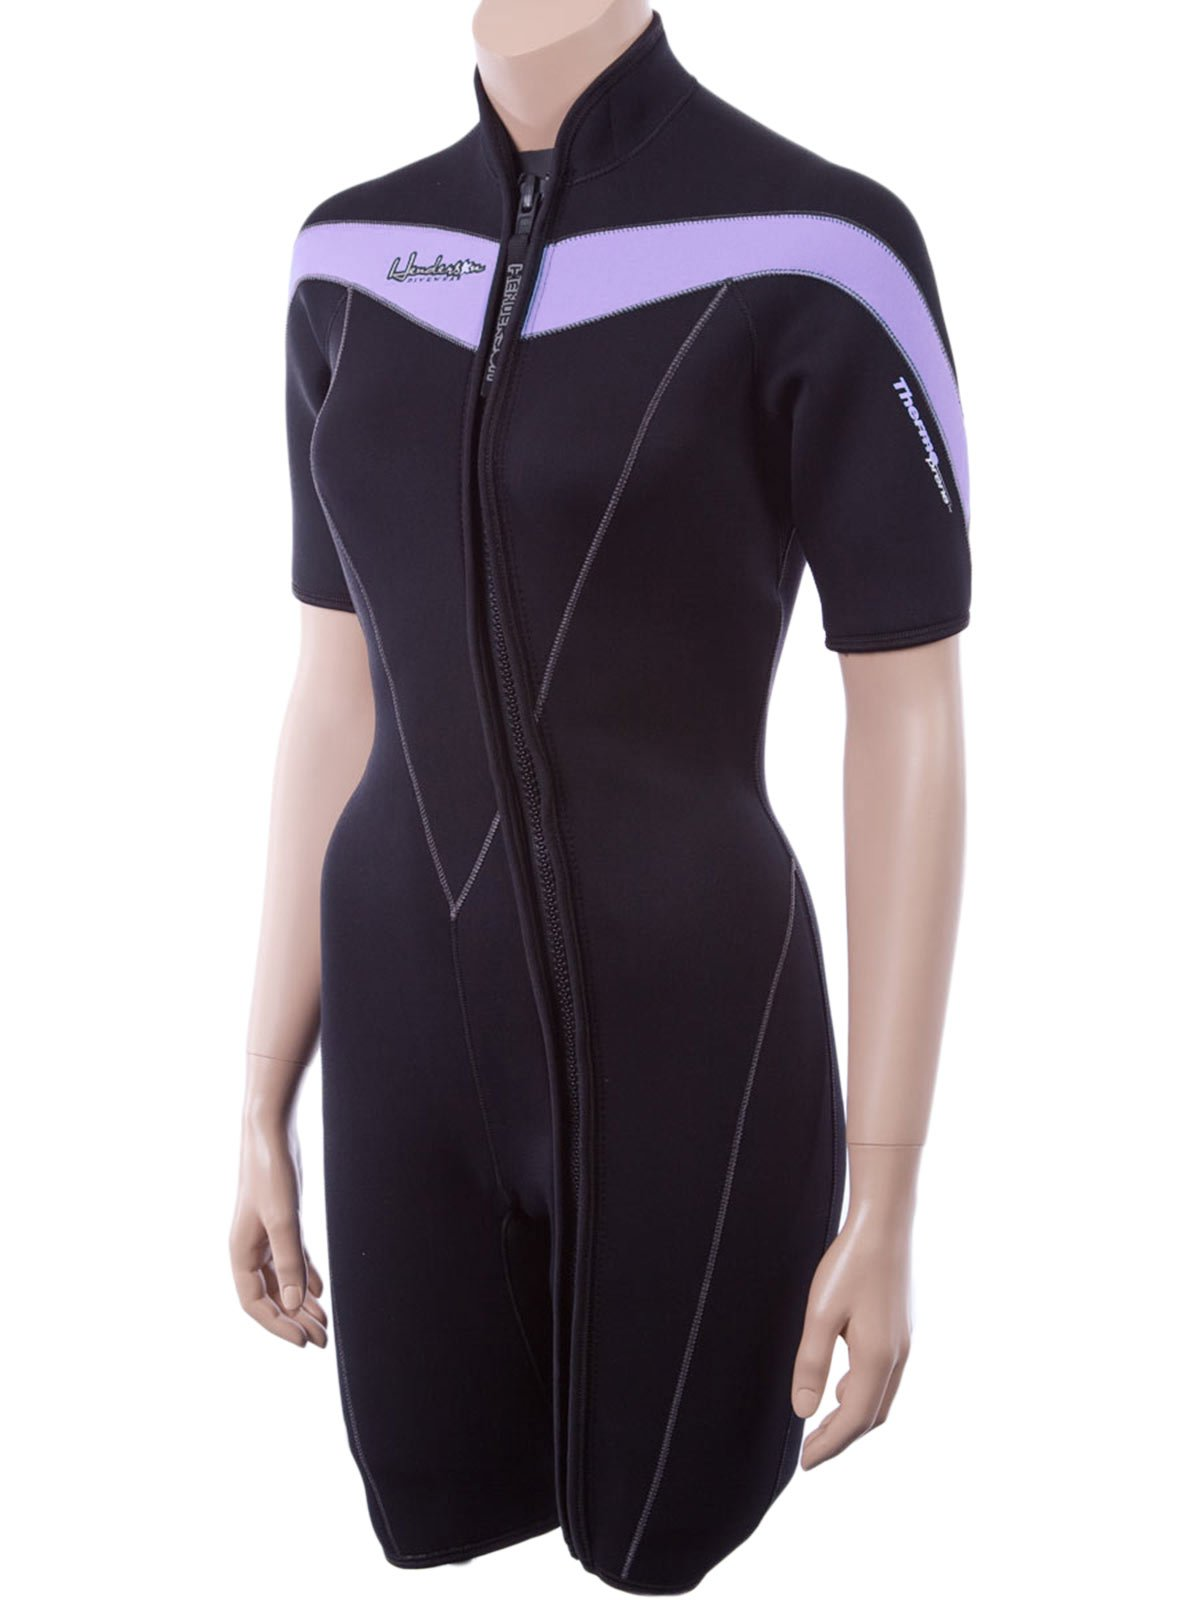 Henderson Thermoprene 3mm Womens Front Zip Wetsuit (with Plus, Tall, Petite) Women's 4 Black/Lavender by Henderson